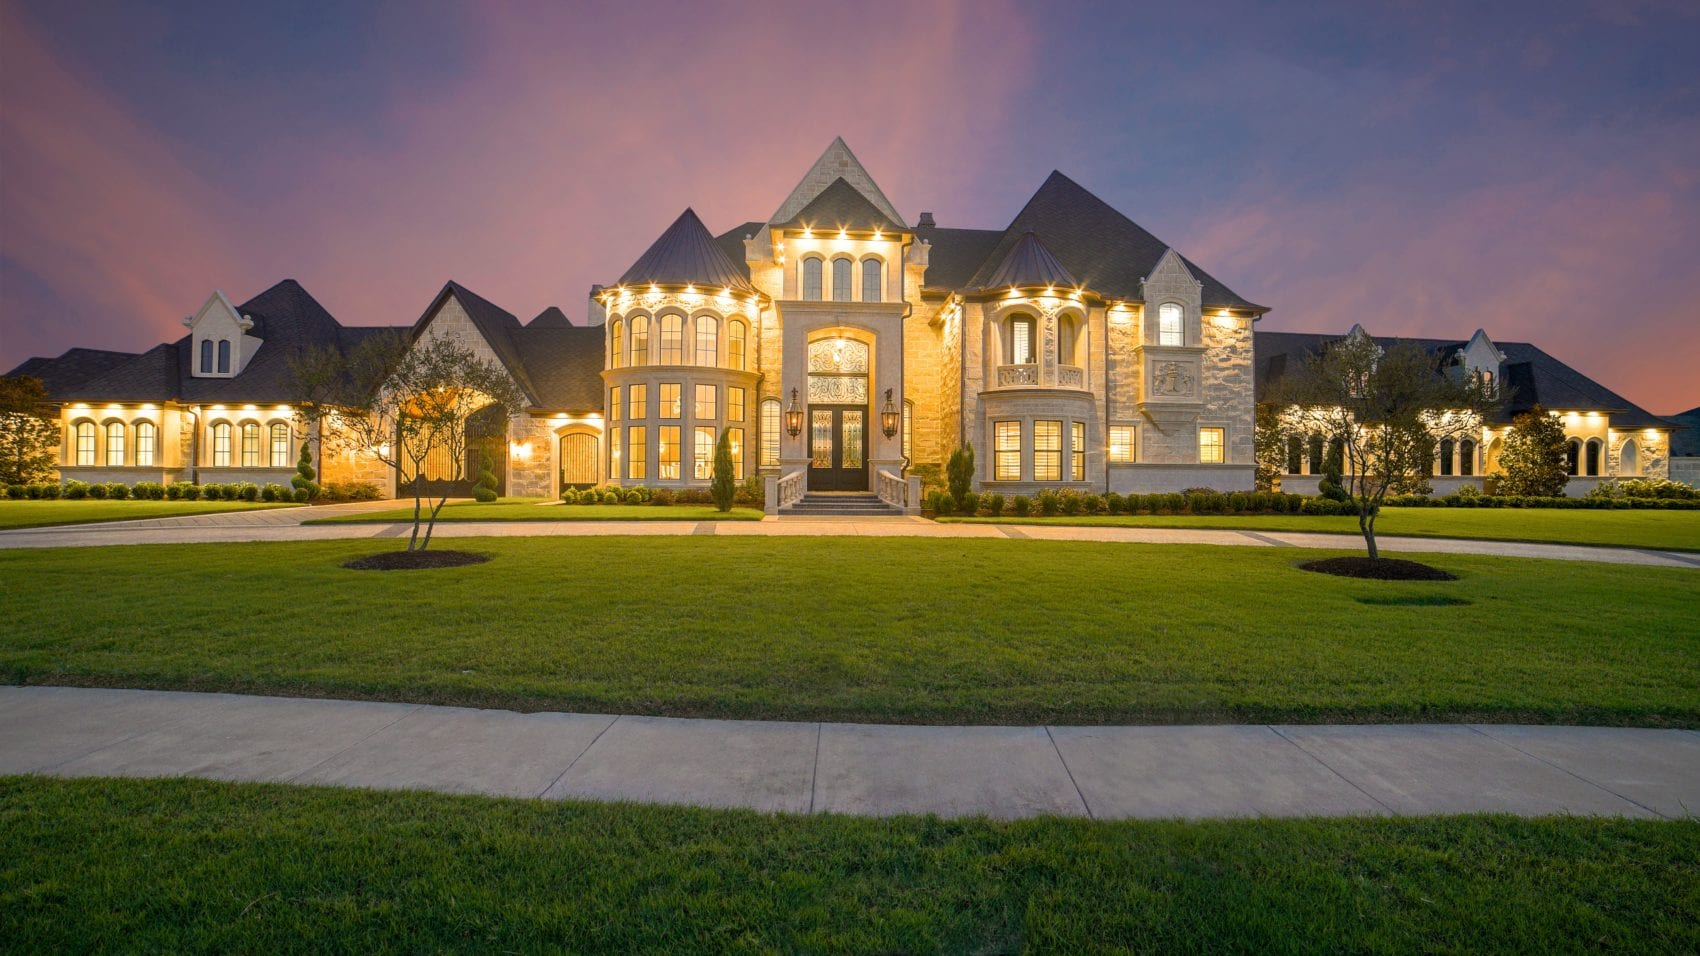 A gigantic palance with a very large front yard